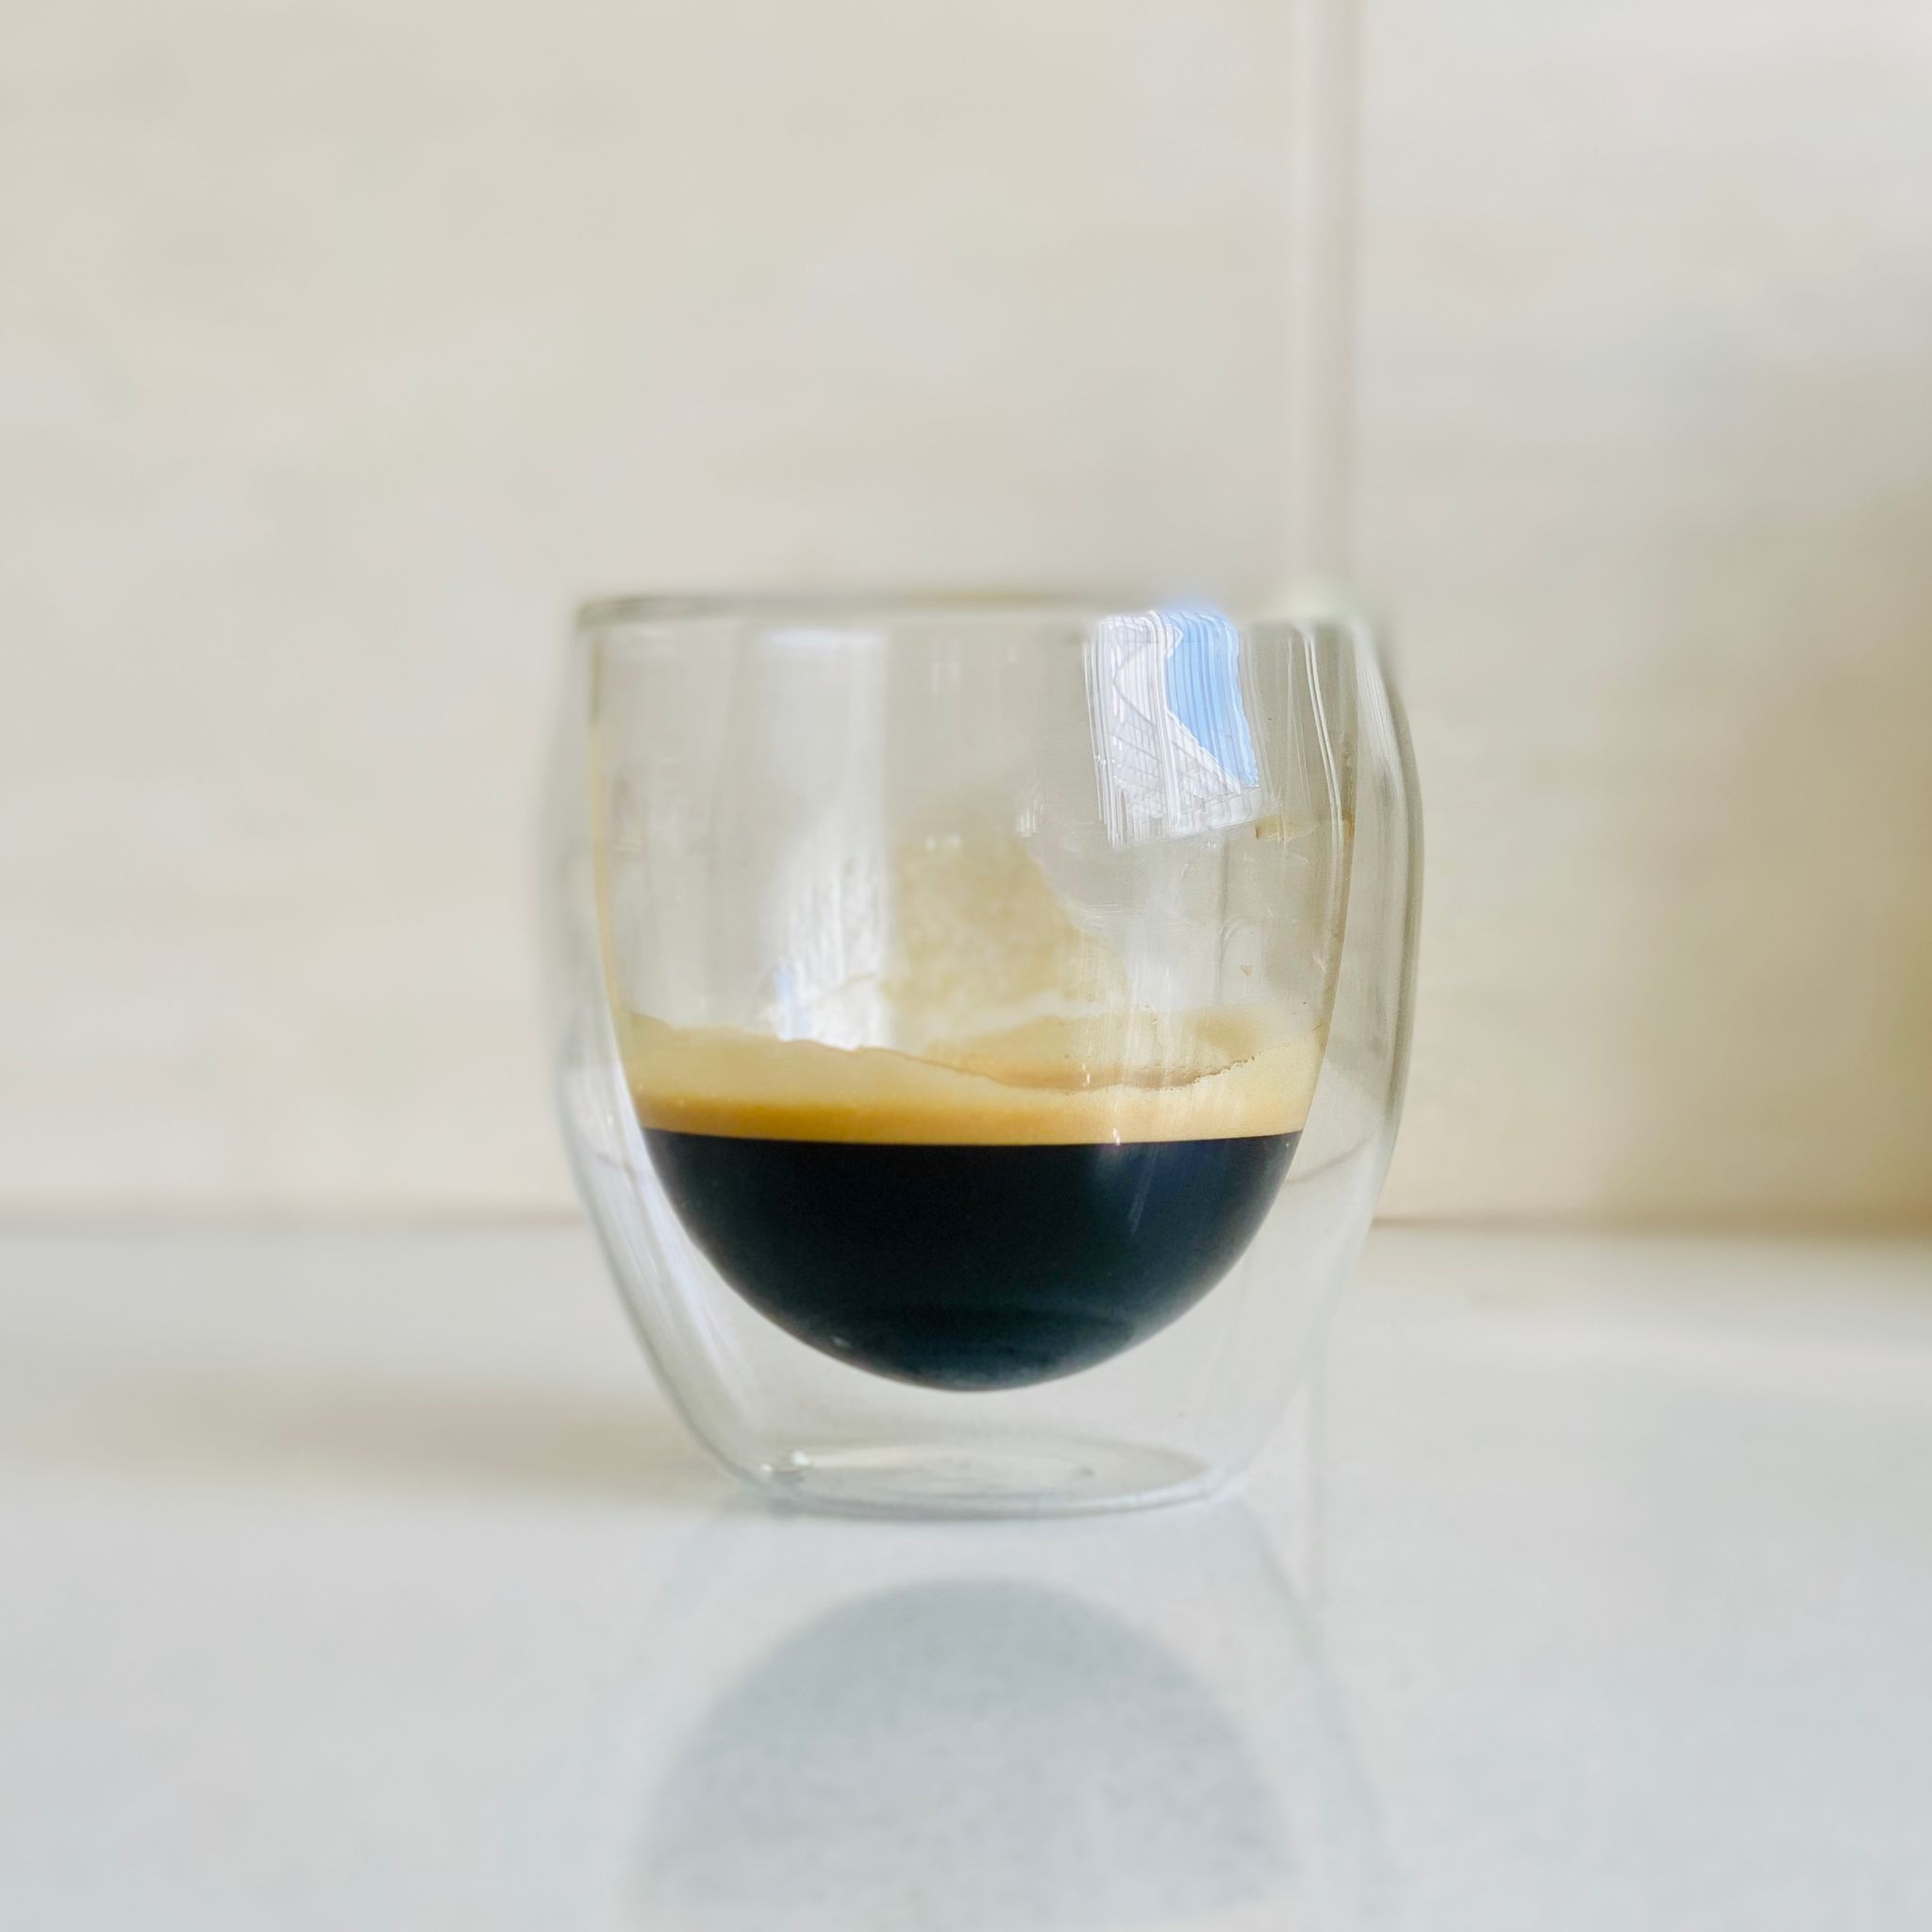 A photo of a short glass with espresso in it, it's curved on the outside and is double-walled with an even more pronounced curve on the inside walls where the liquid sits. The espresso looks like it's floating.